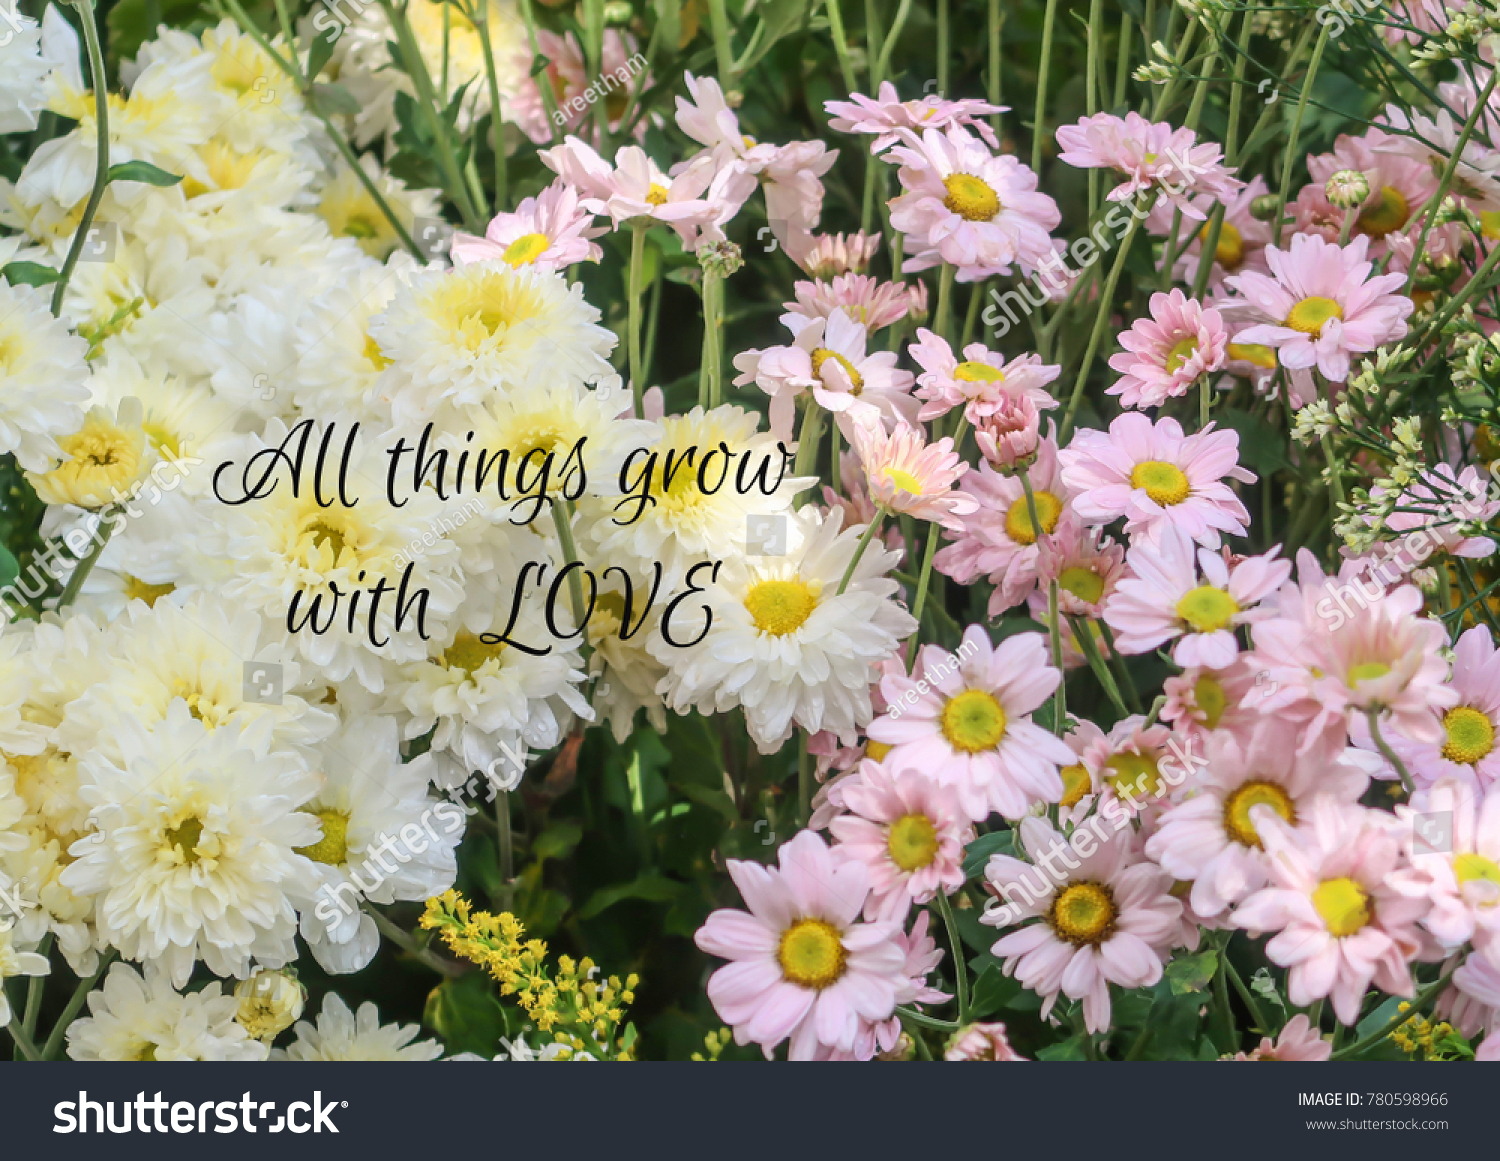 Inspirational Motivation Quote On Flower Background Stock Photo